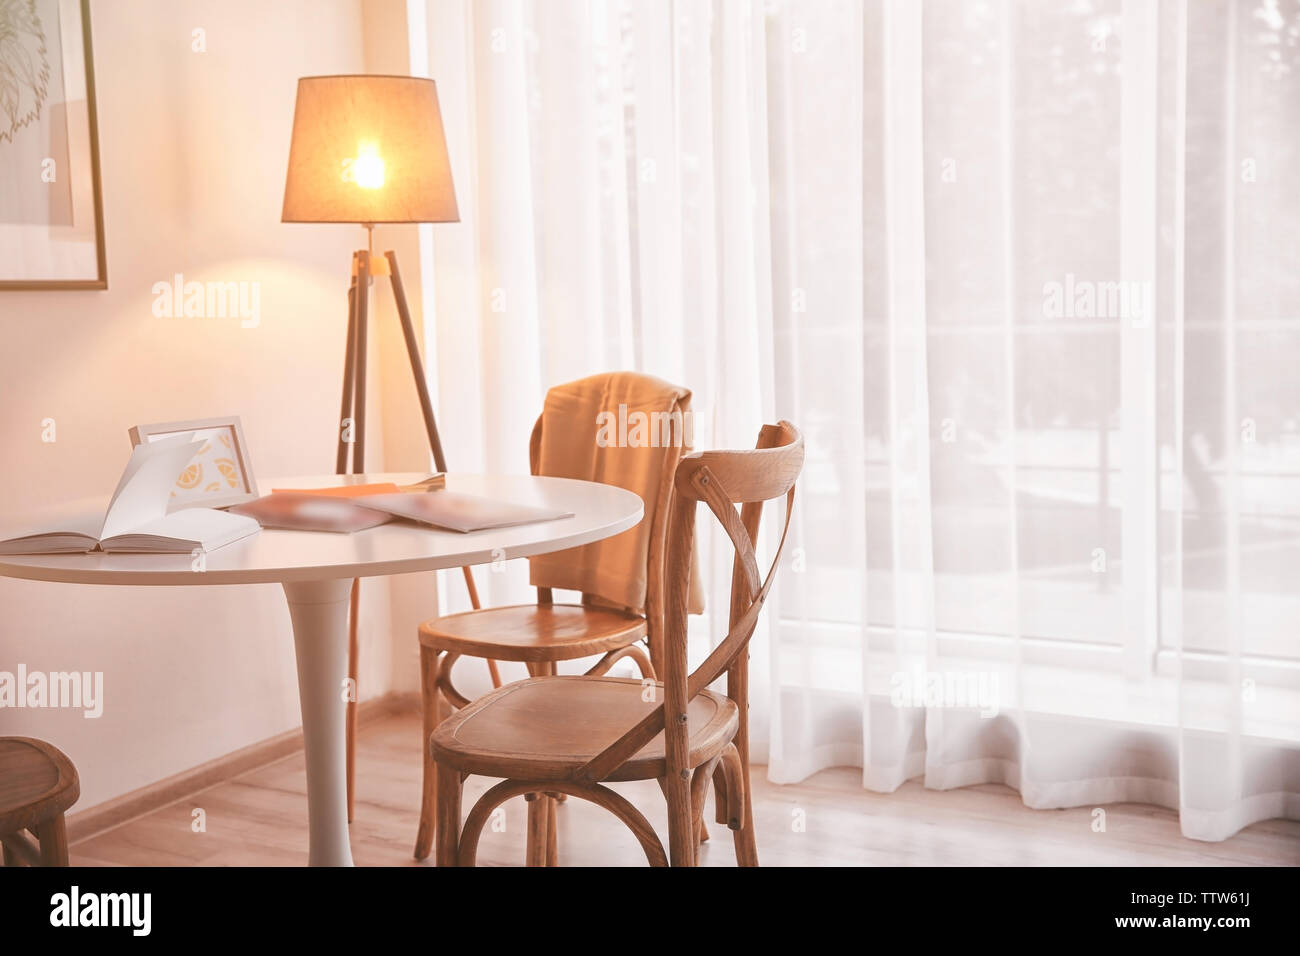 Table with chairs in light room interior - Stock Image